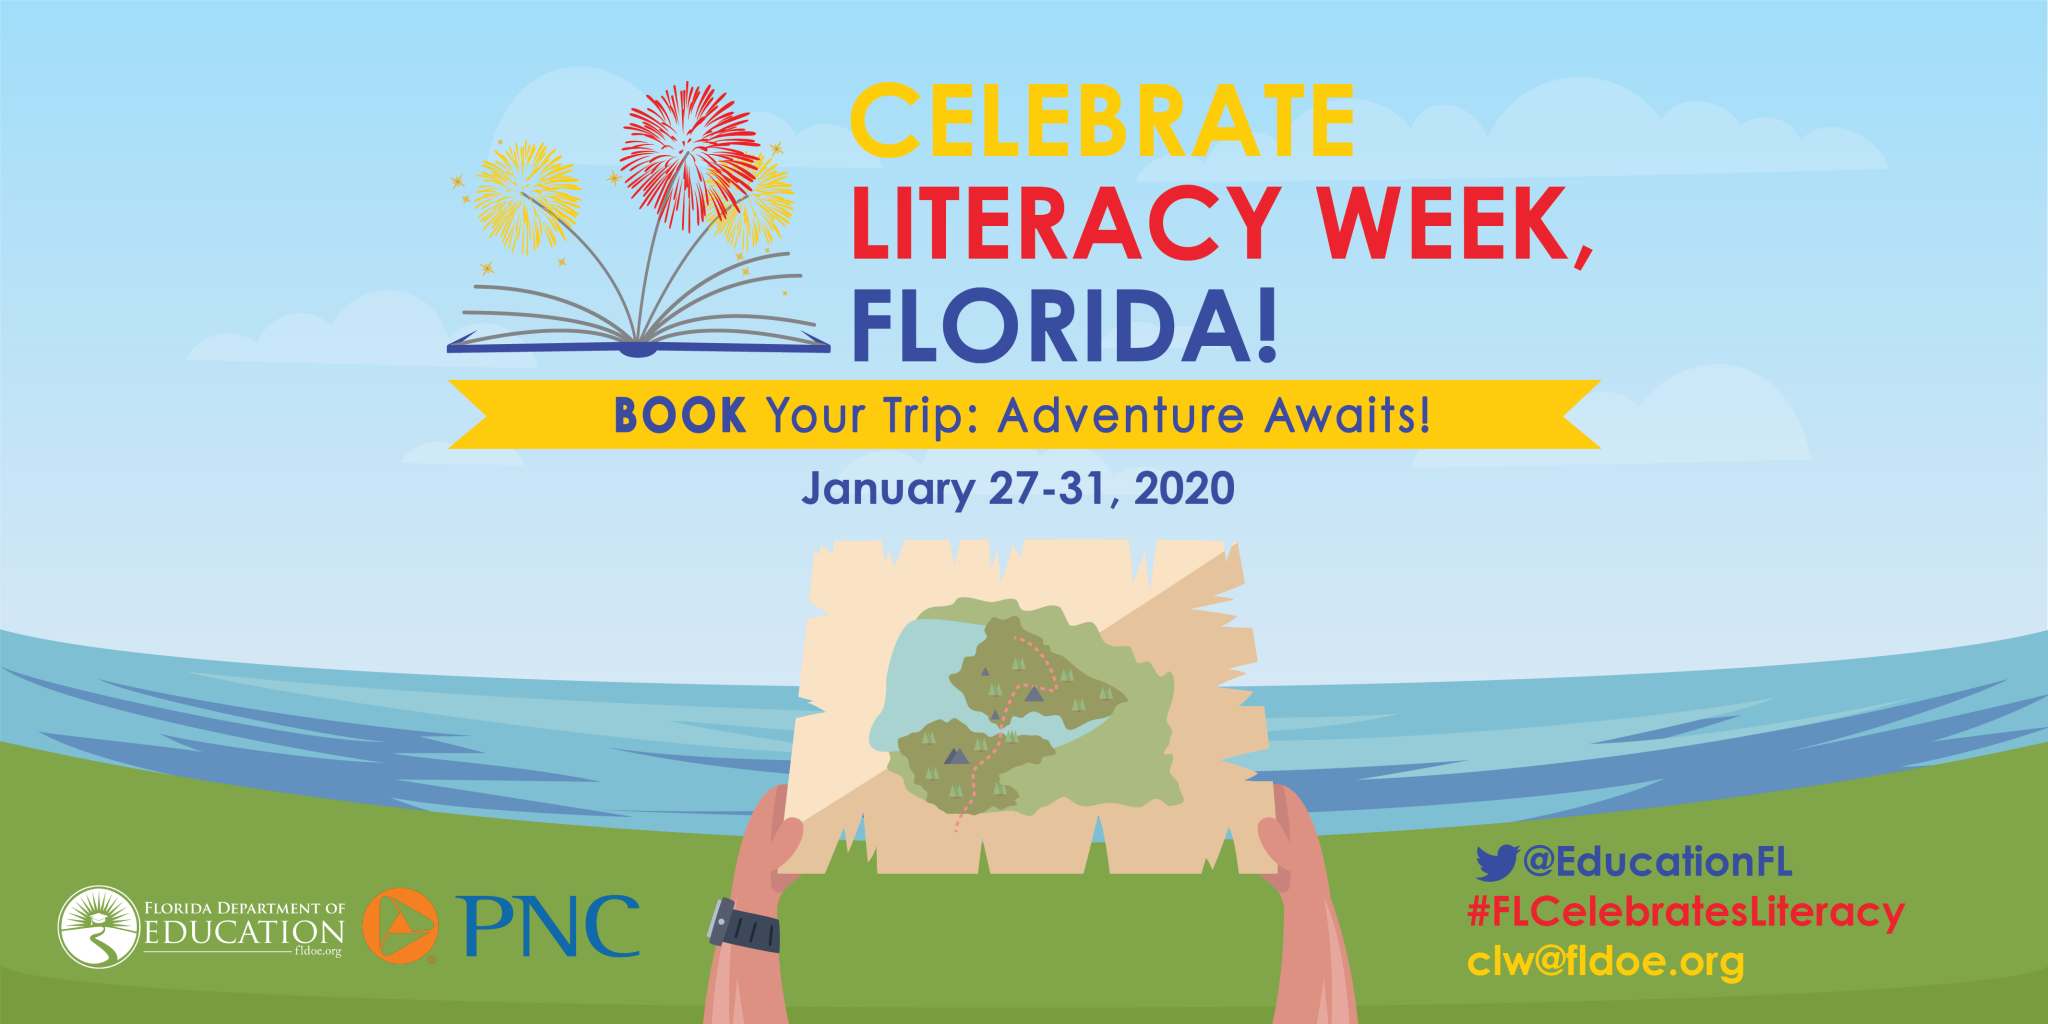 Celebrate Literacy Week, Florida! Graphic from Florida Department of Education